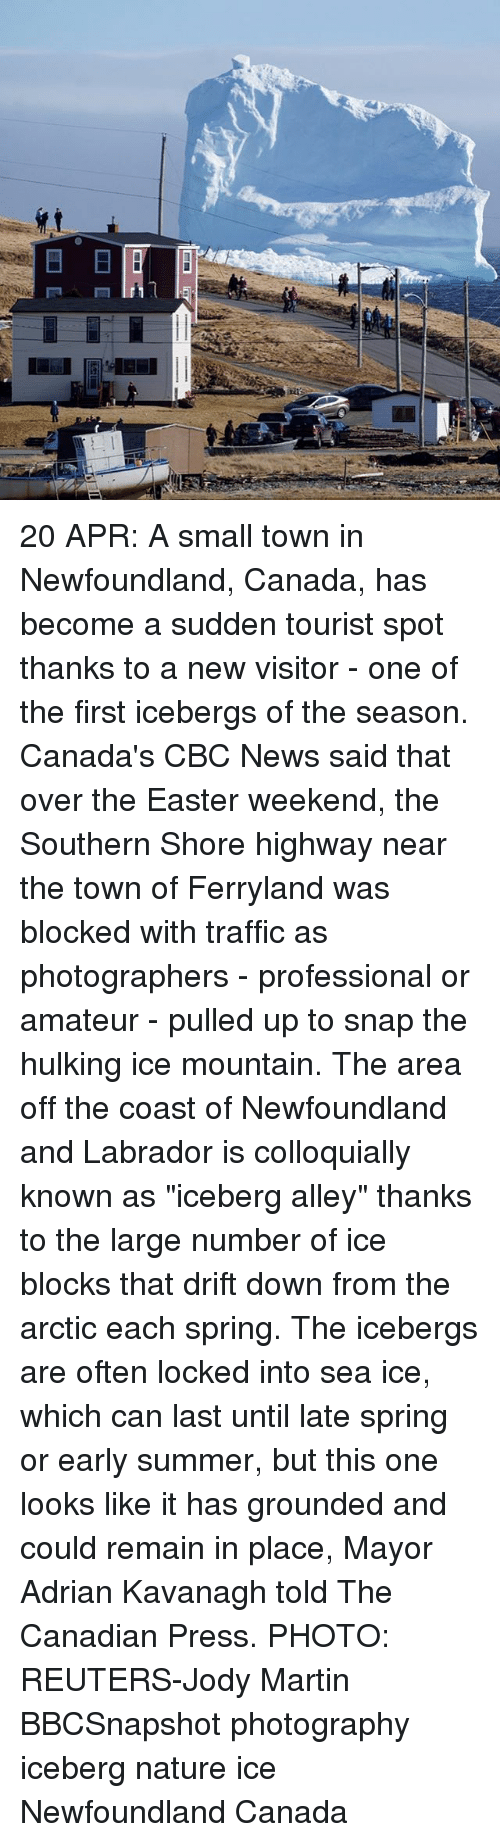 """Amateurly: E  LII 20 APR: A small town in Newfoundland, Canada, has become a sudden tourist spot thanks to a new visitor - one of the first icebergs of the season. Canada's CBC News said that over the Easter weekend, the Southern Shore highway near the town of Ferryland was blocked with traffic as photographers - professional or amateur - pulled up to snap the hulking ice mountain. The area off the coast of Newfoundland and Labrador is colloquially known as """"iceberg alley"""" thanks to the large number of ice blocks that drift down from the arctic each spring. The icebergs are often locked into sea ice, which can last until late spring or early summer, but this one looks like it has grounded and could remain in place, Mayor Adrian Kavanagh told The Canadian Press. PHOTO: REUTERS-Jody Martin BBCSnapshot photography iceberg nature ice Newfoundland Canada"""